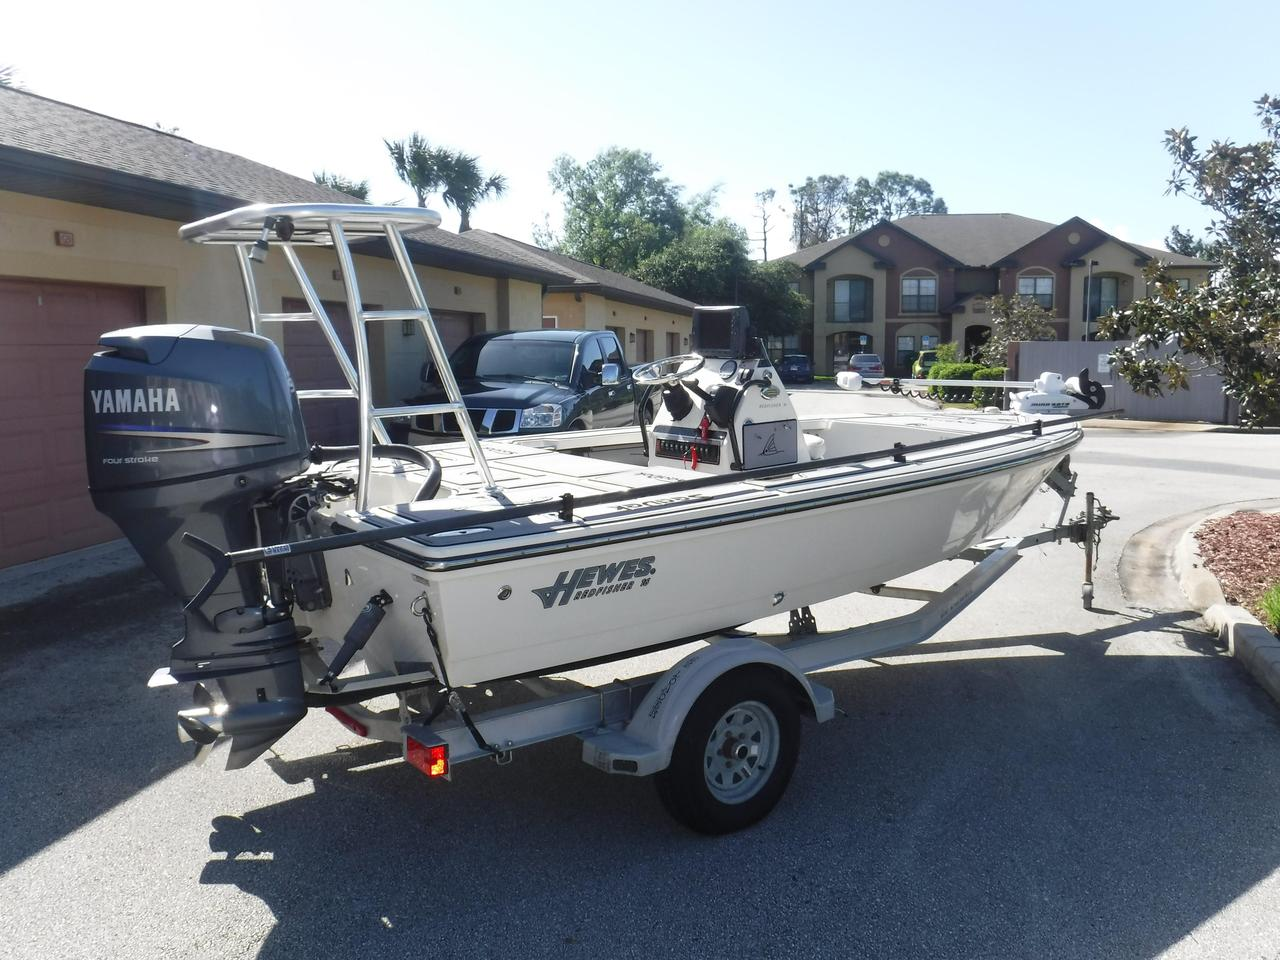 2010 used hewes 16 redfisher center console fishing boat for Used center console fishing boats for sale